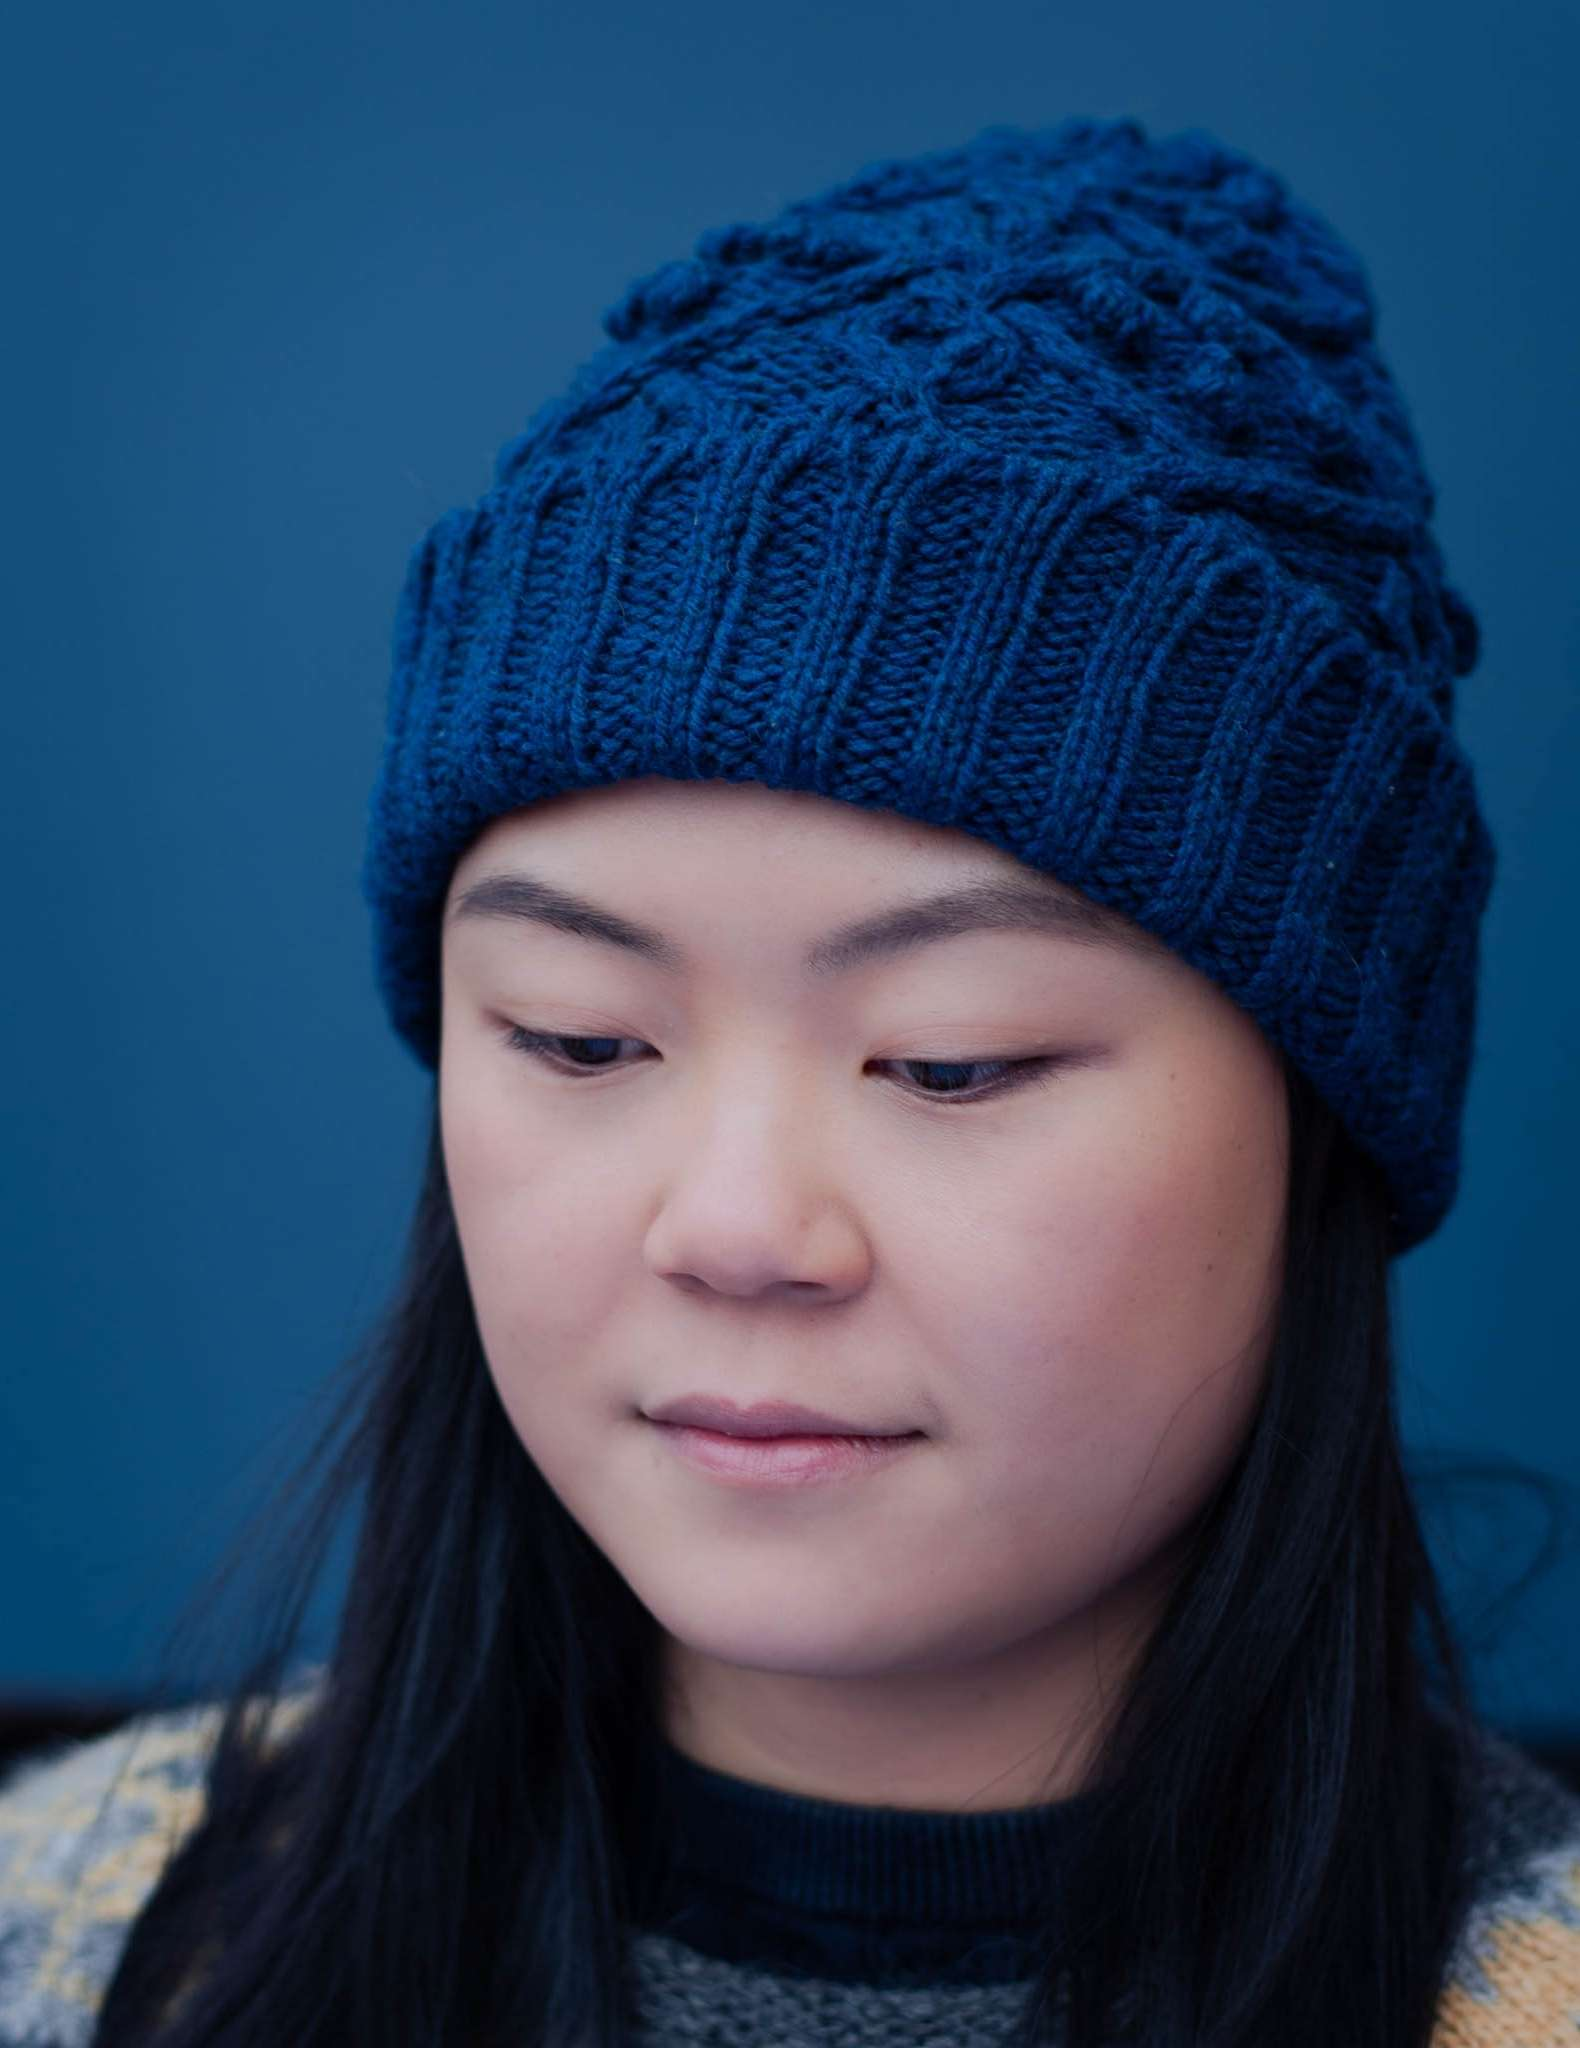 a close up of a young woman with straight dark hair looking down, she is wearing a cabled blue hat against a blue background